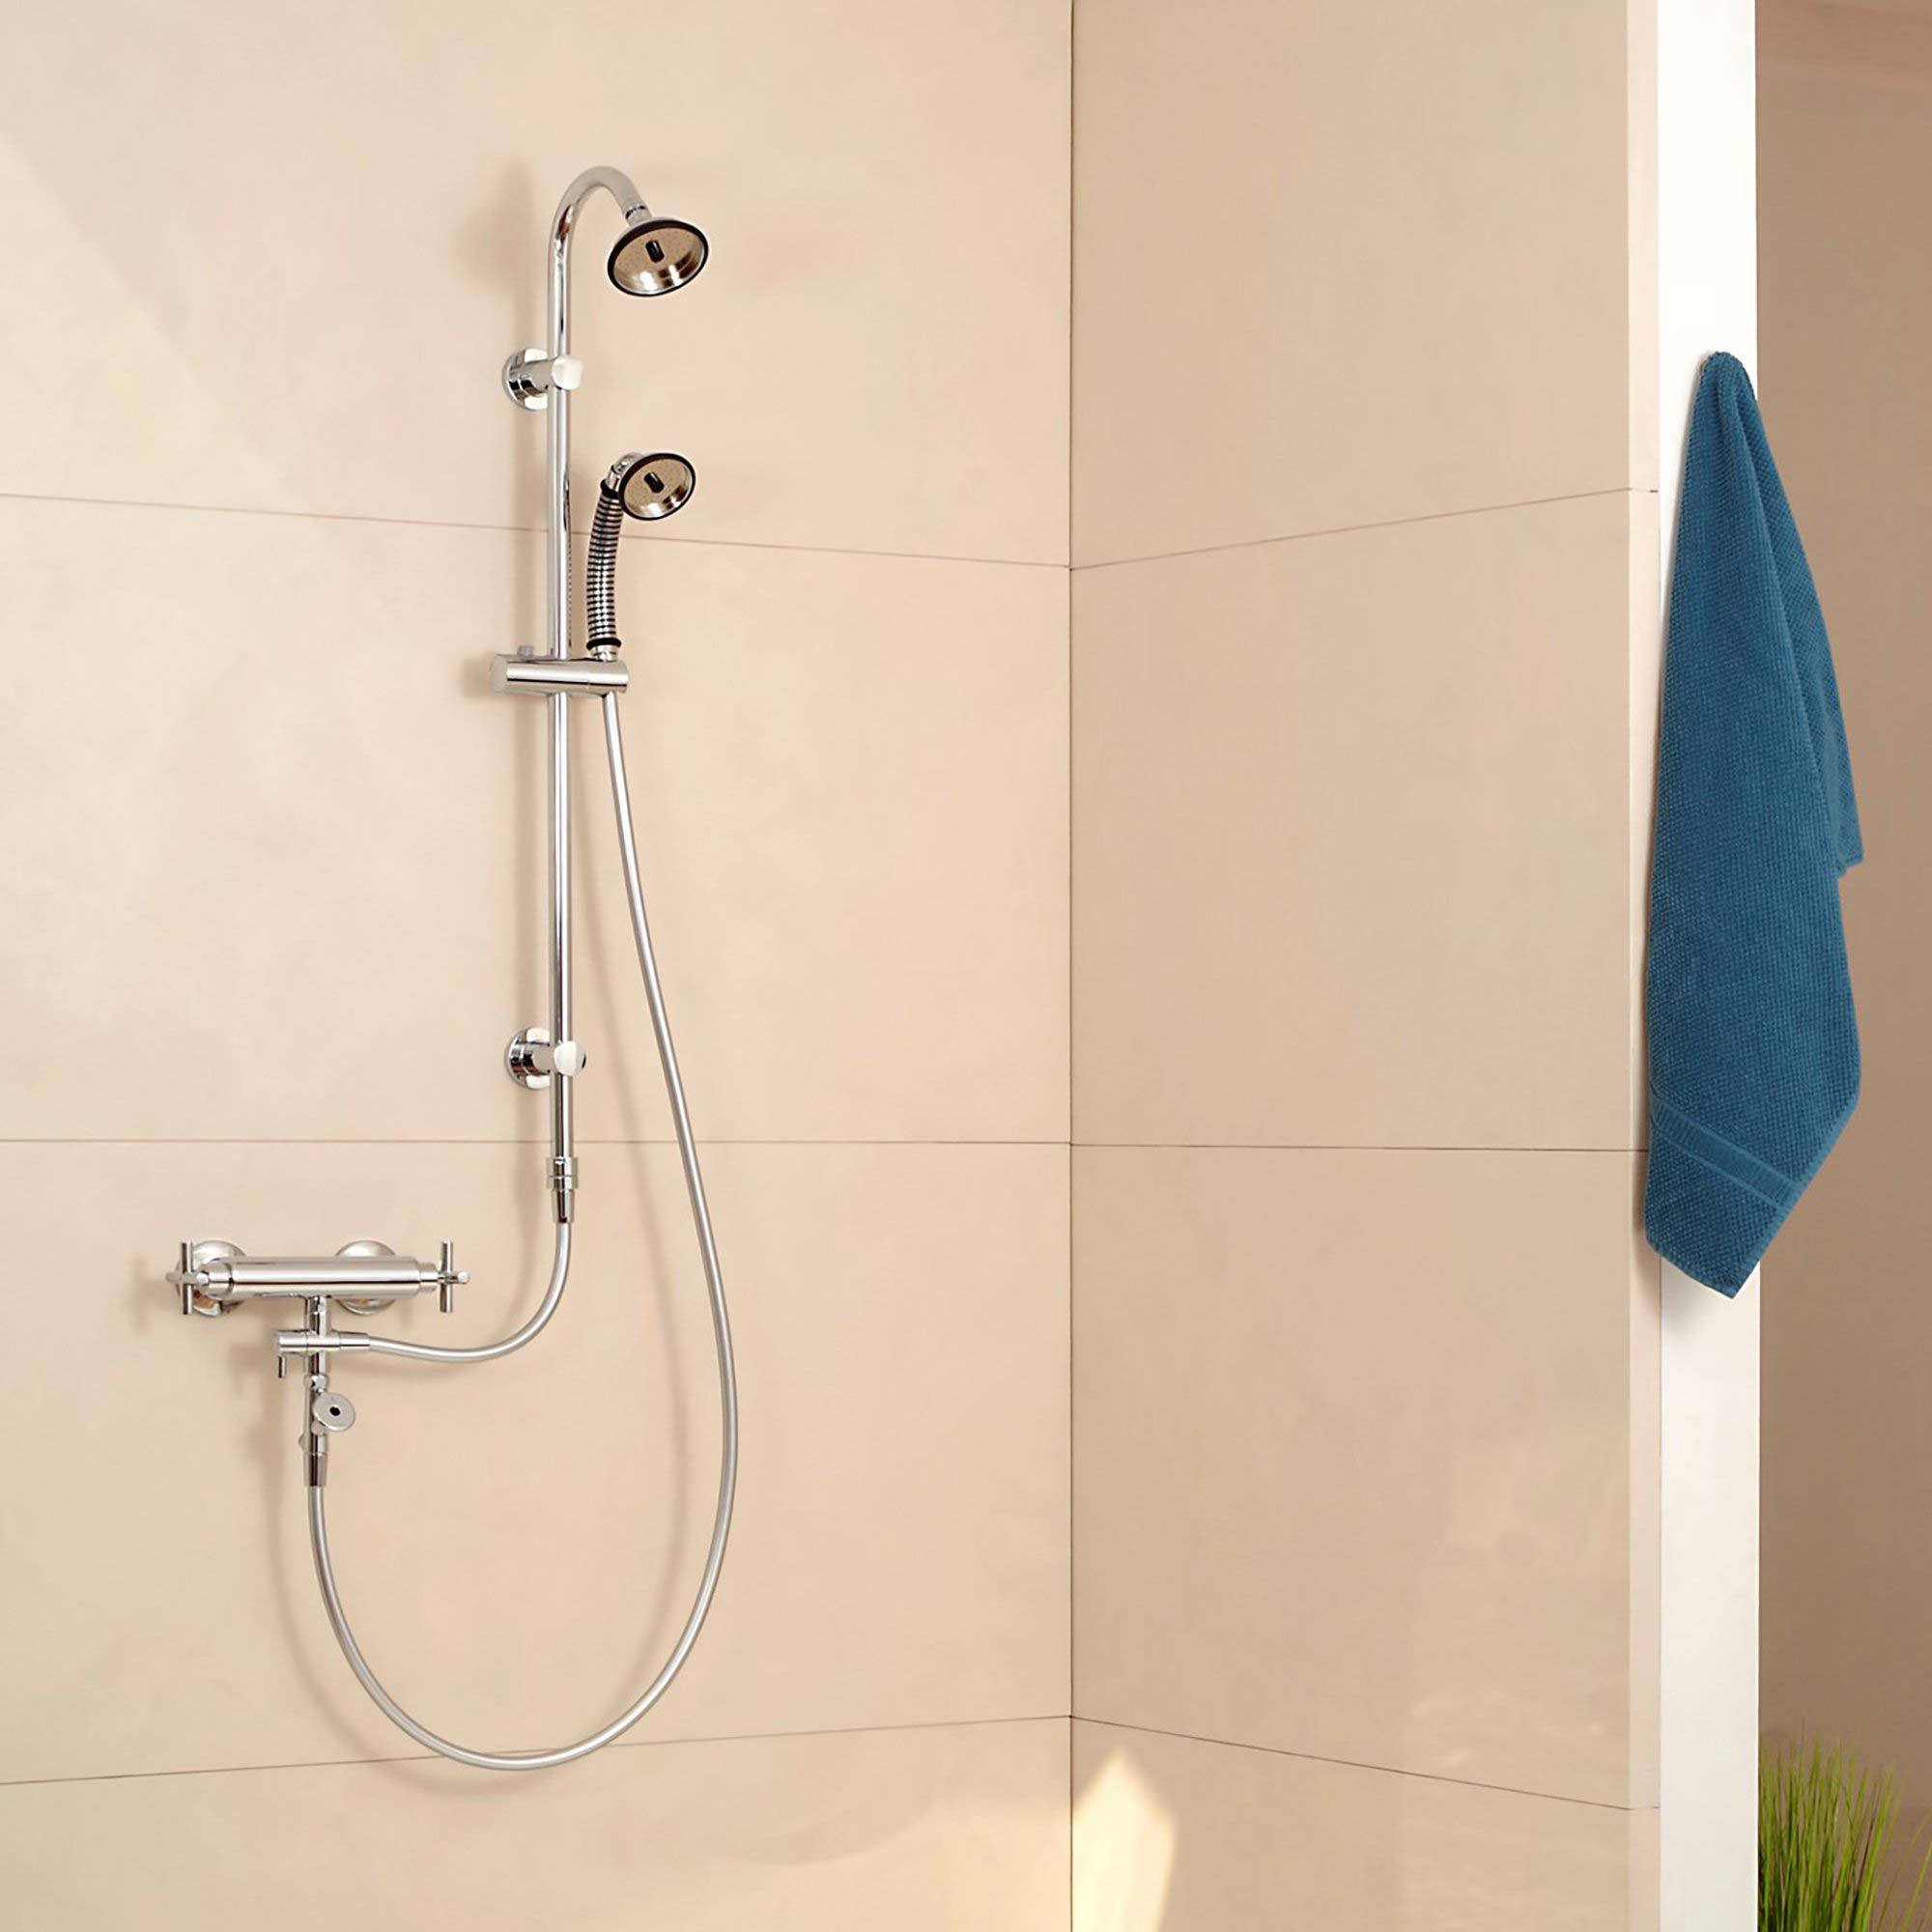 BUBBLE-RAIN® XL Shower Head with Handle & FlexiClean Hose in bathroom